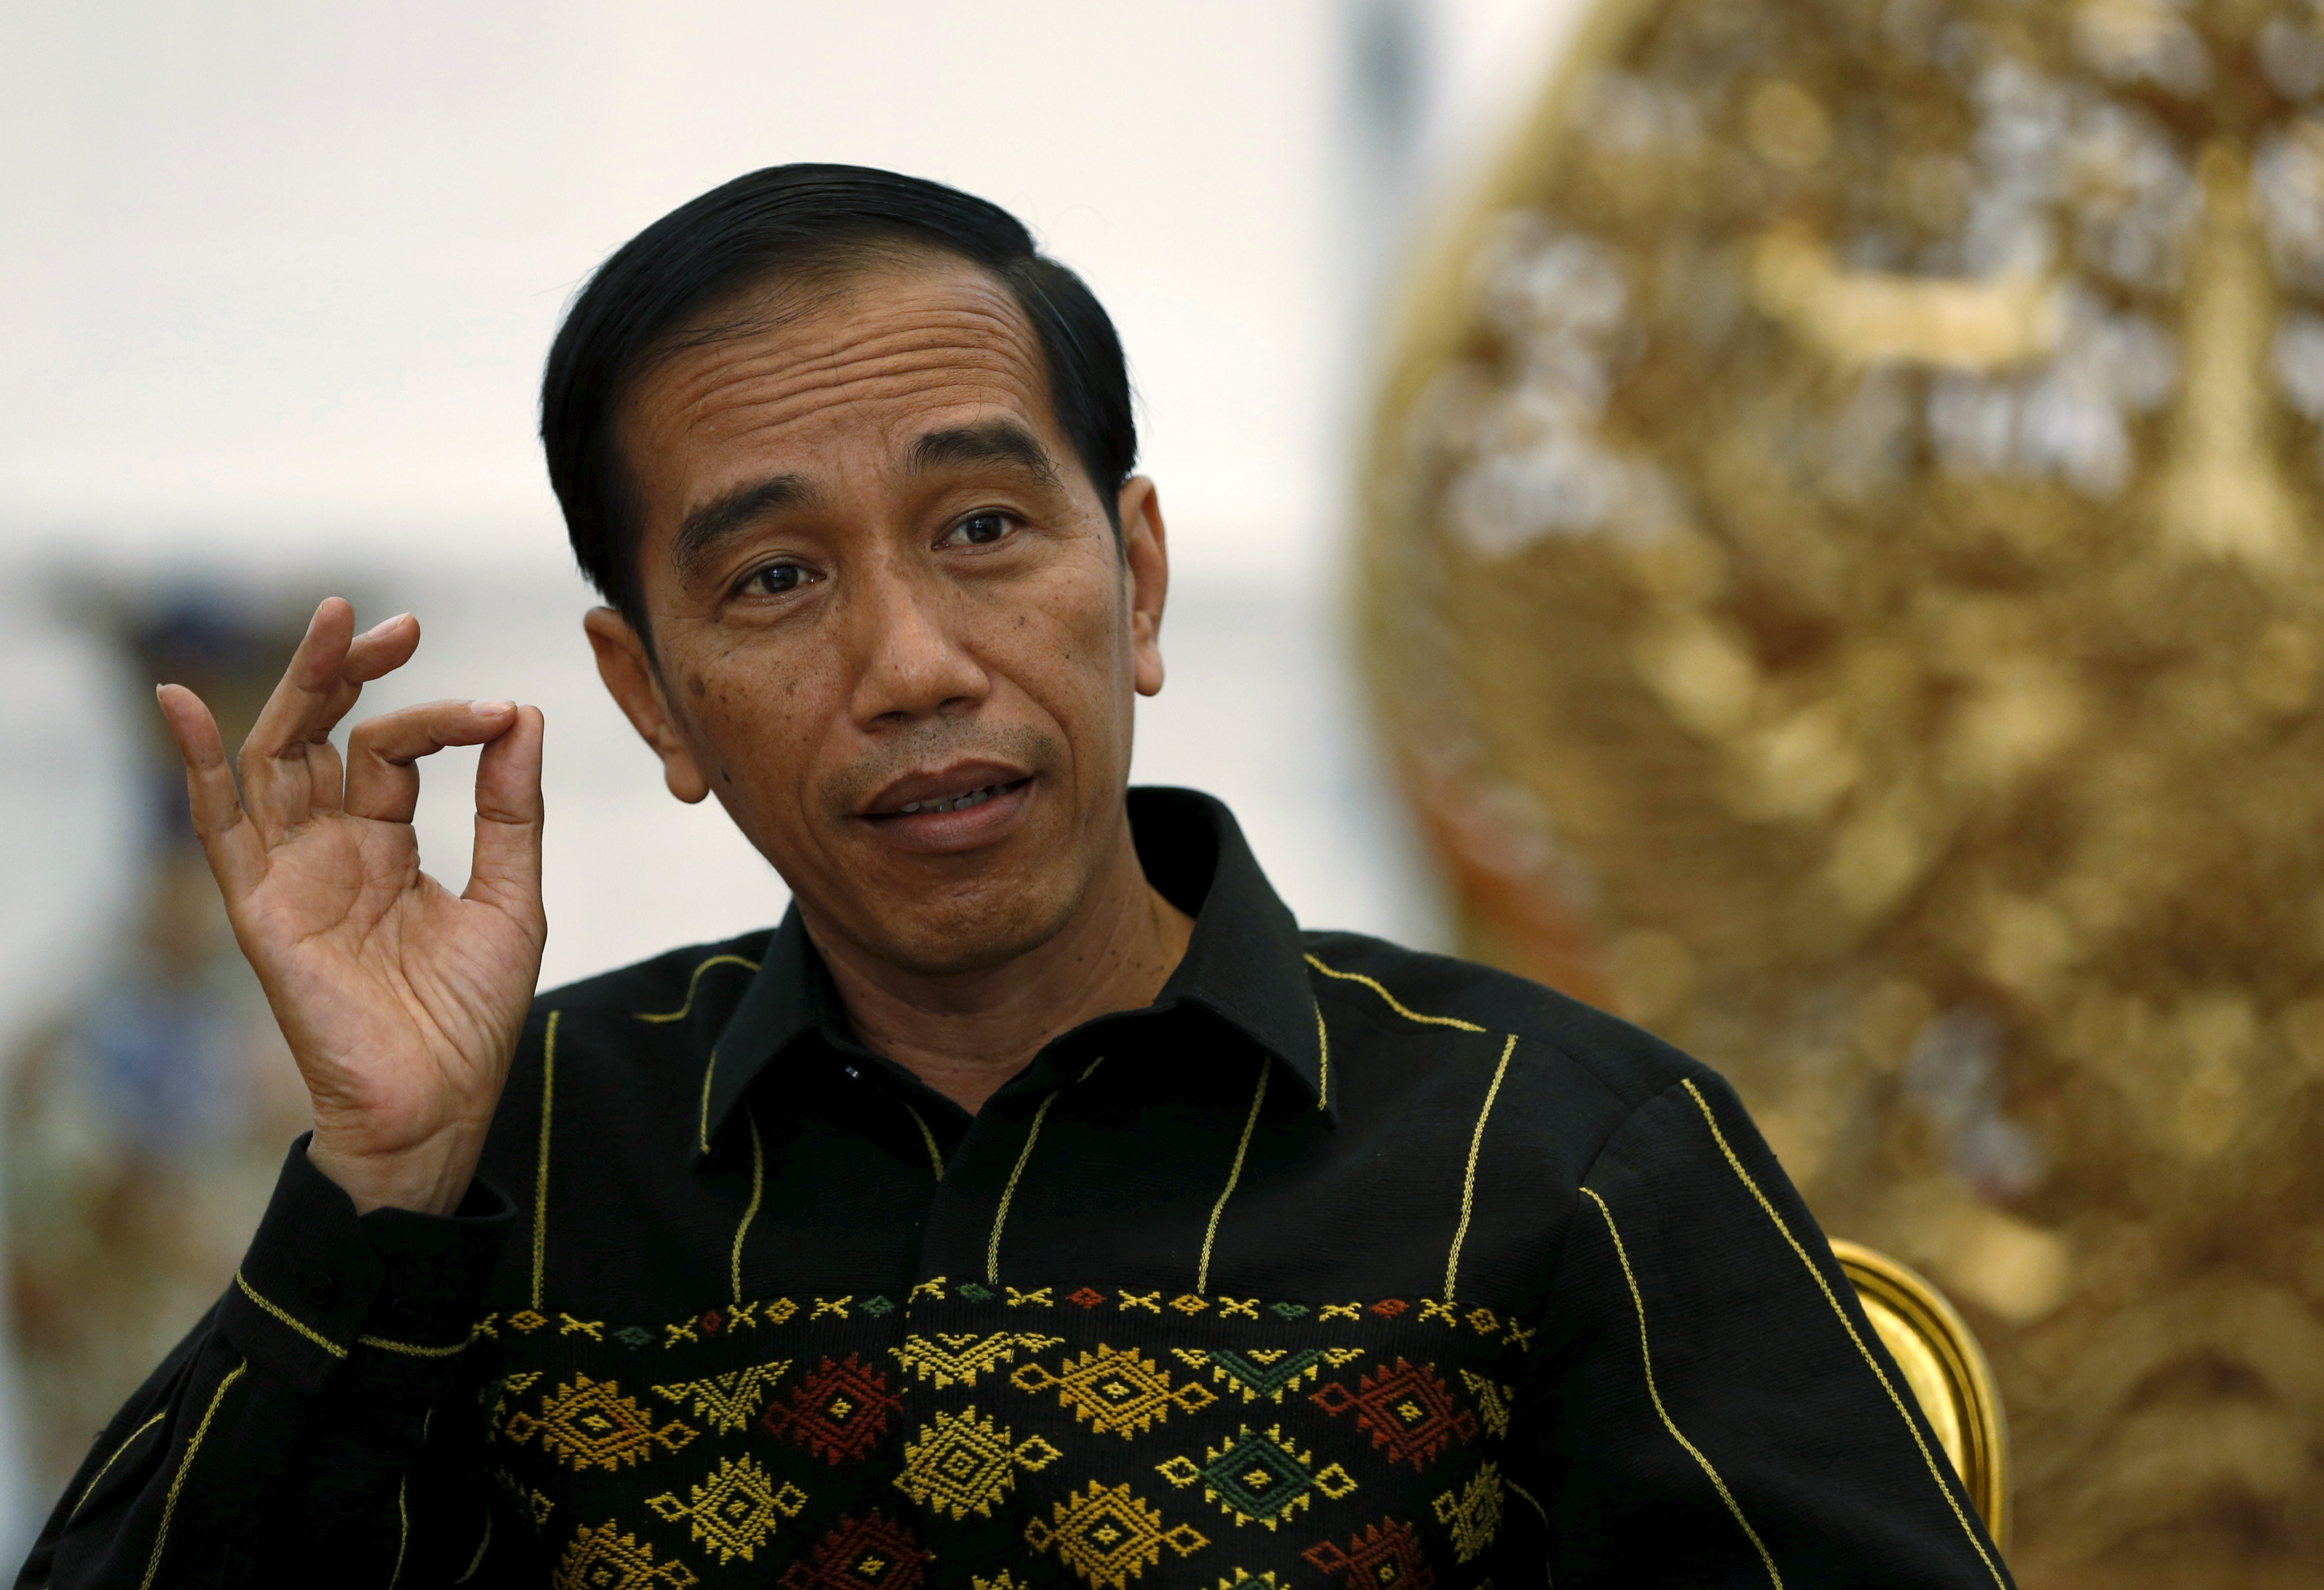 Indonesian President Joko Widodo gestures during an interview with Reuters at the presidential palace in Jakarta on Feb. 10, 2016